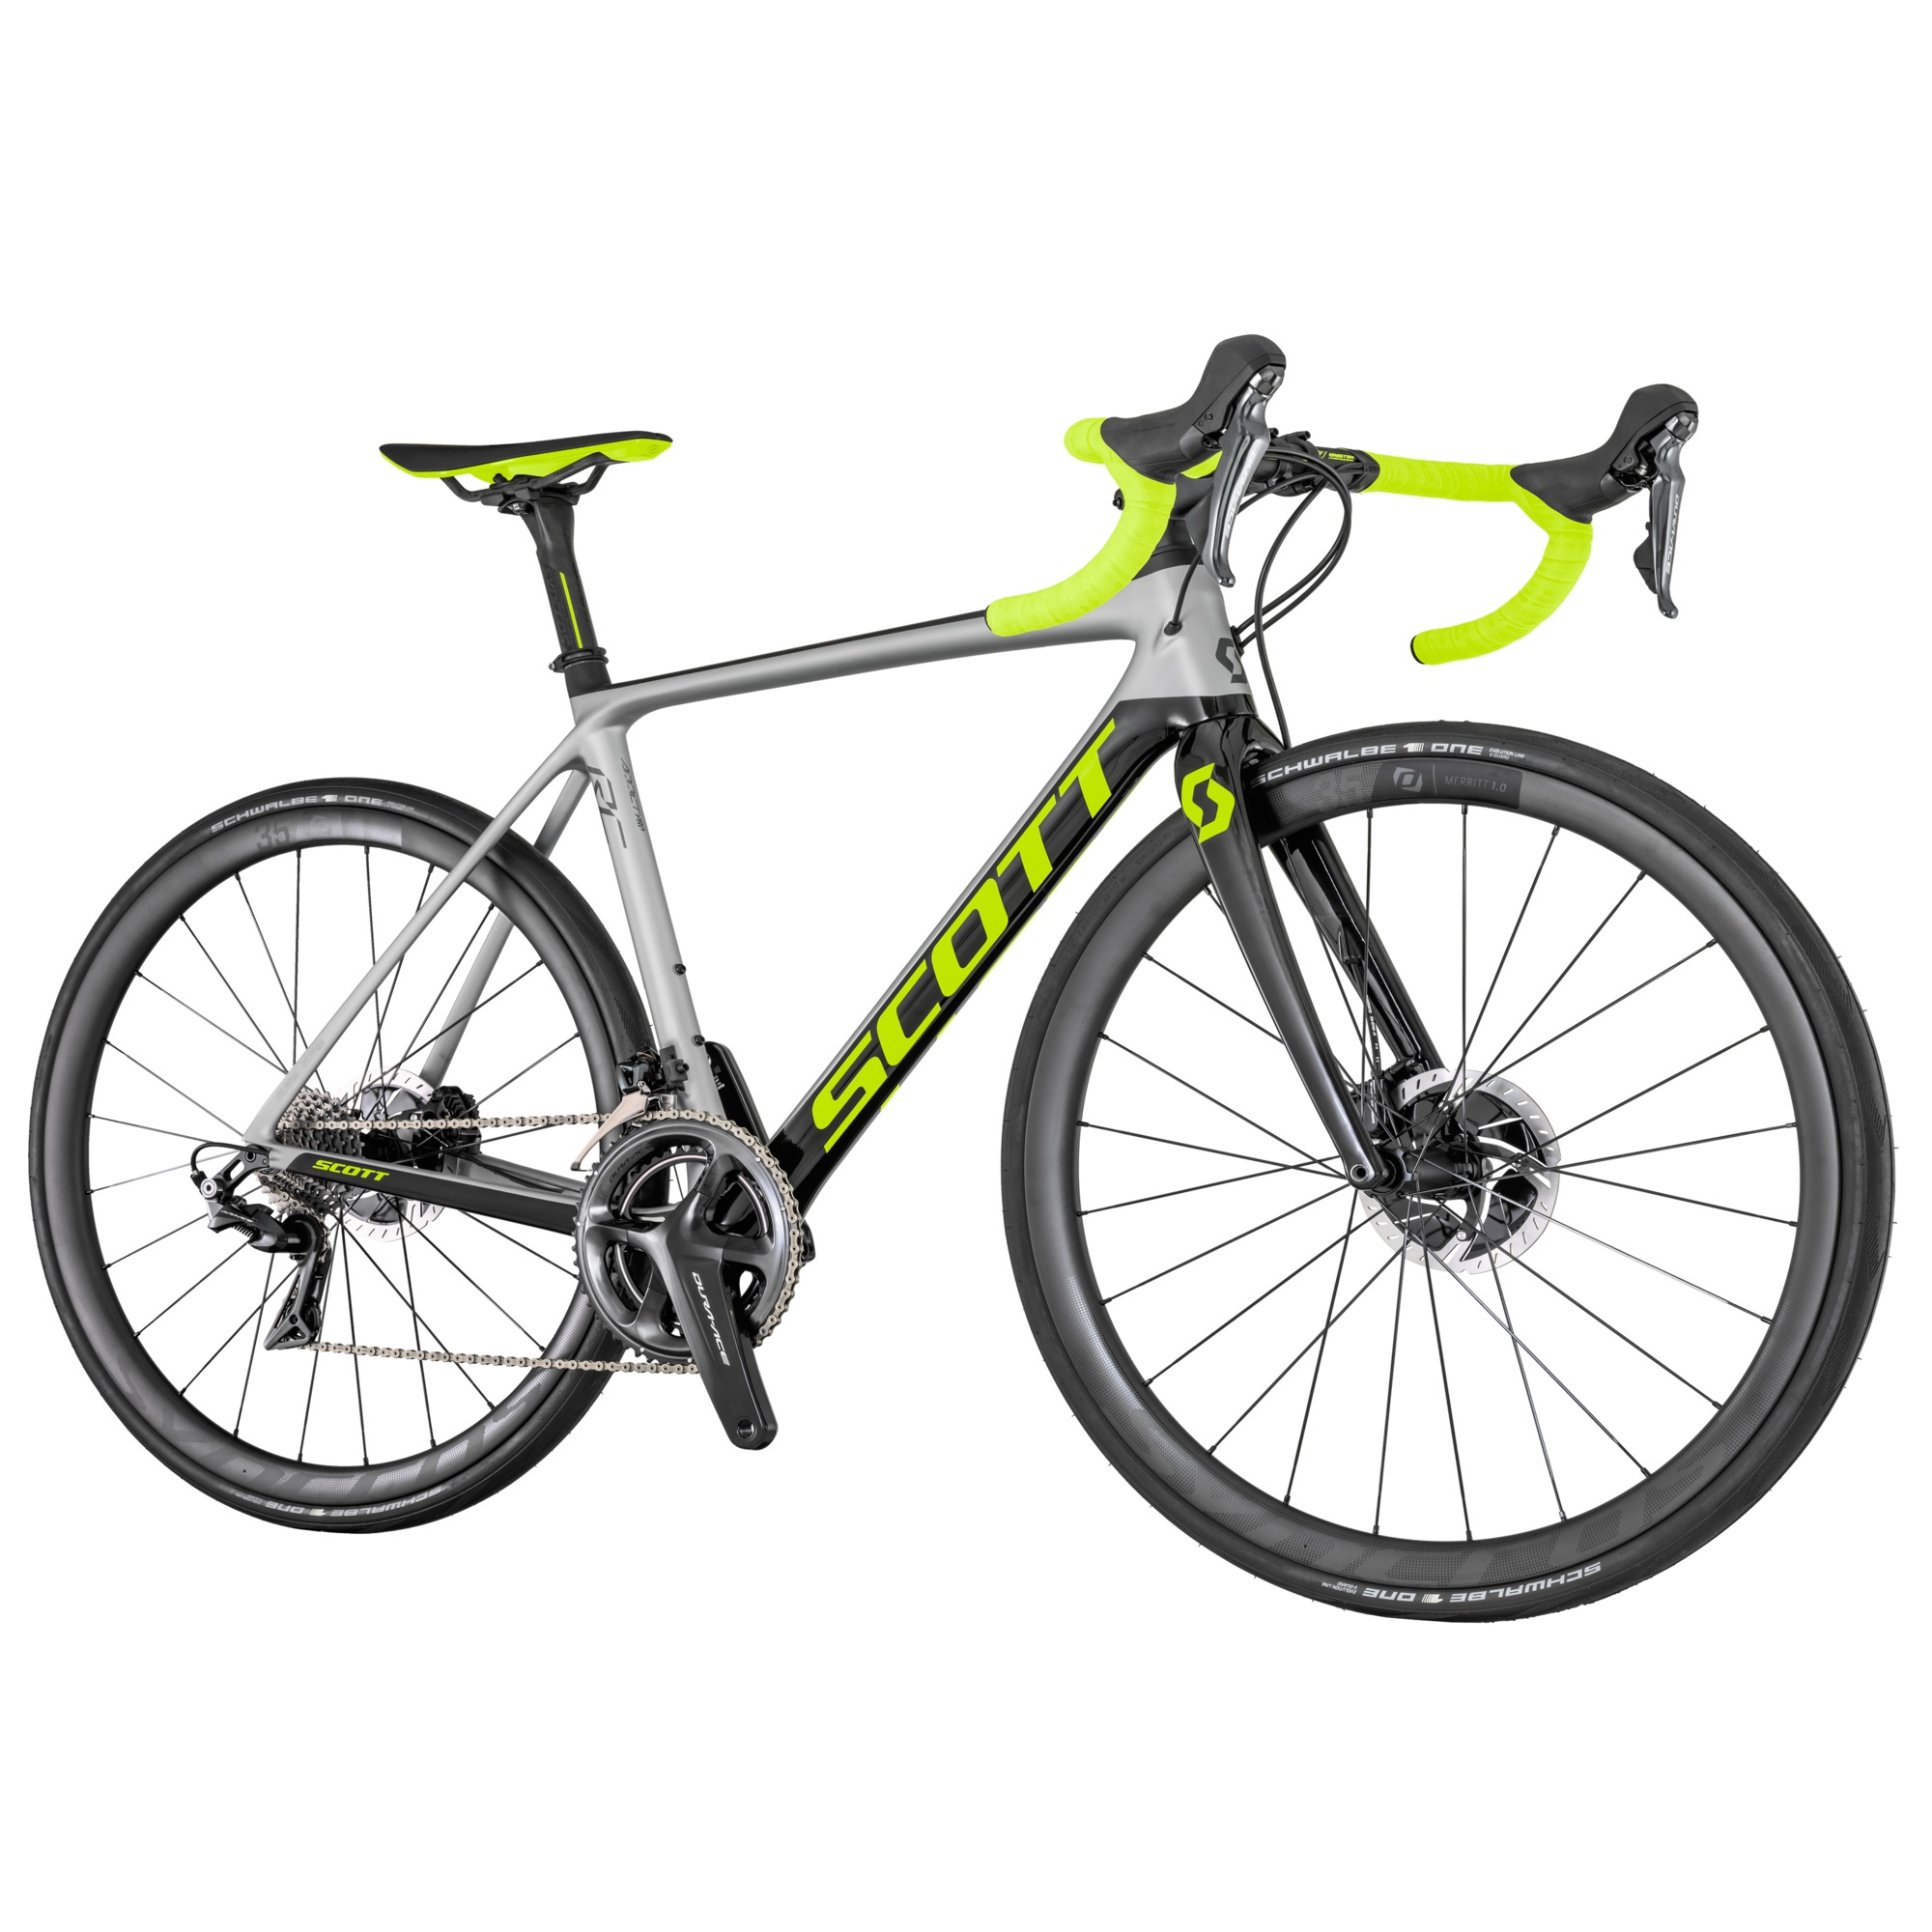 SCOTT Addict RC Pro Disc Bike